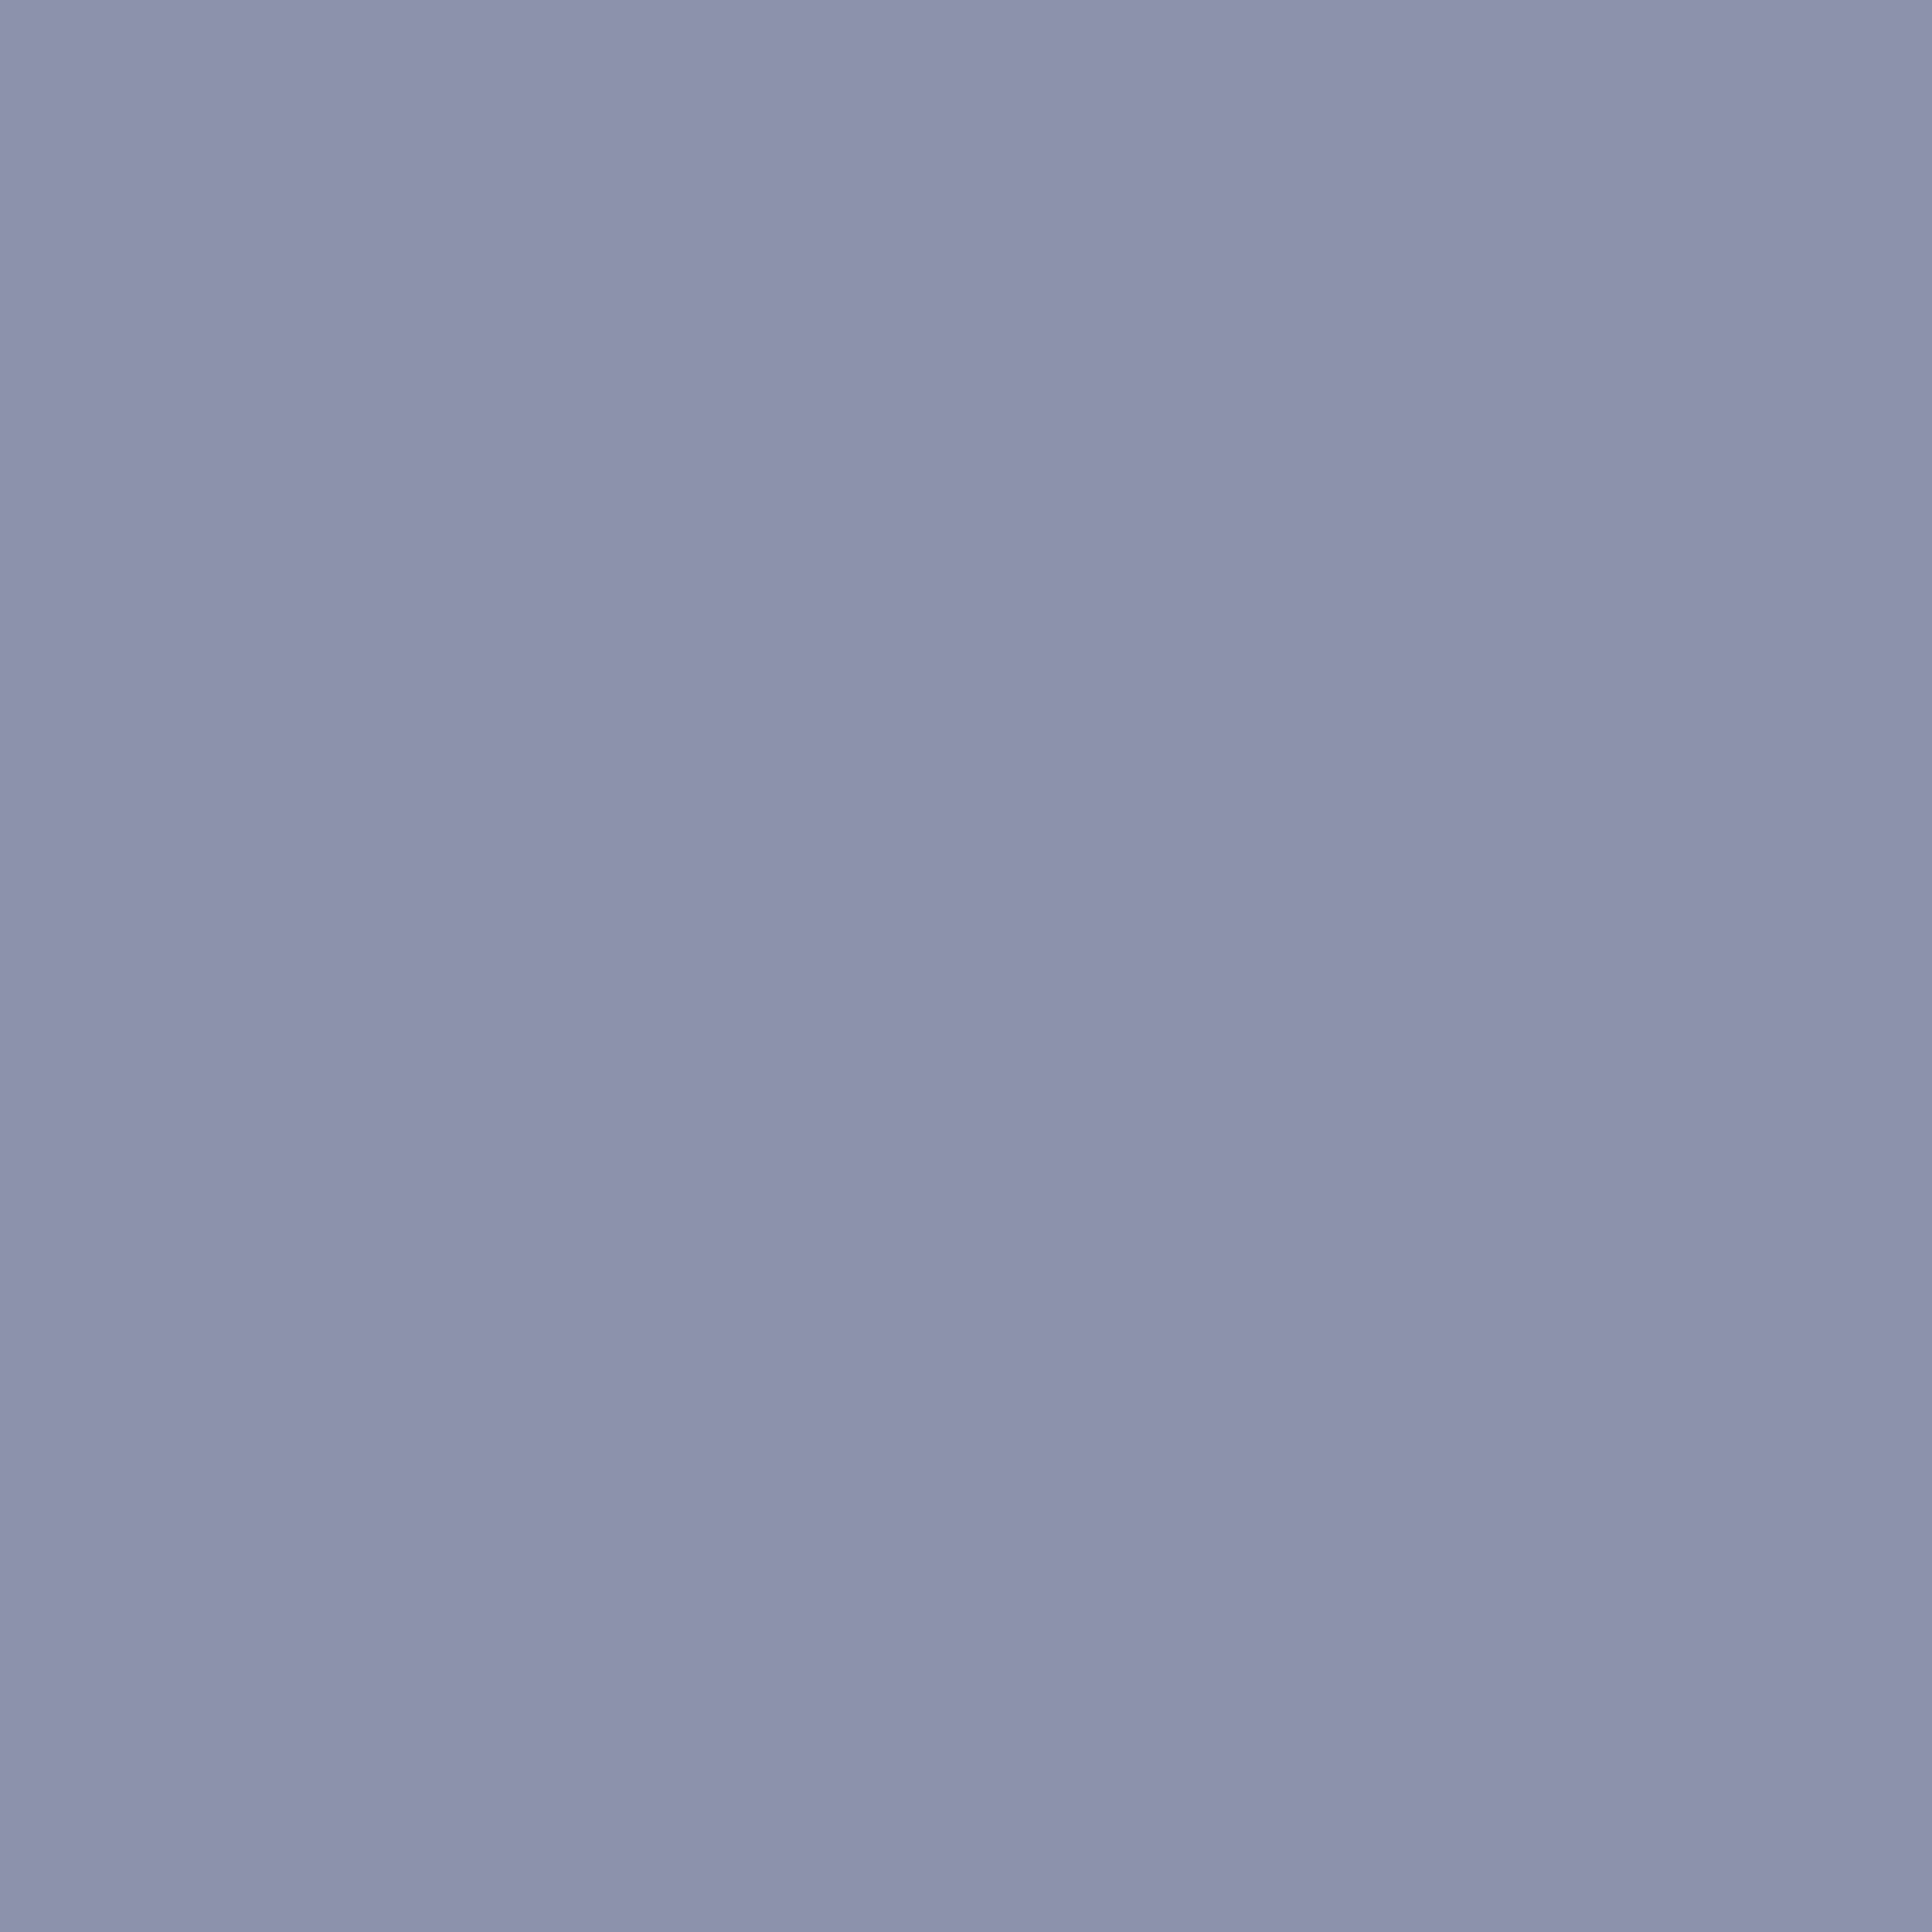 2732x2732 Cool Grey Solid Color Background